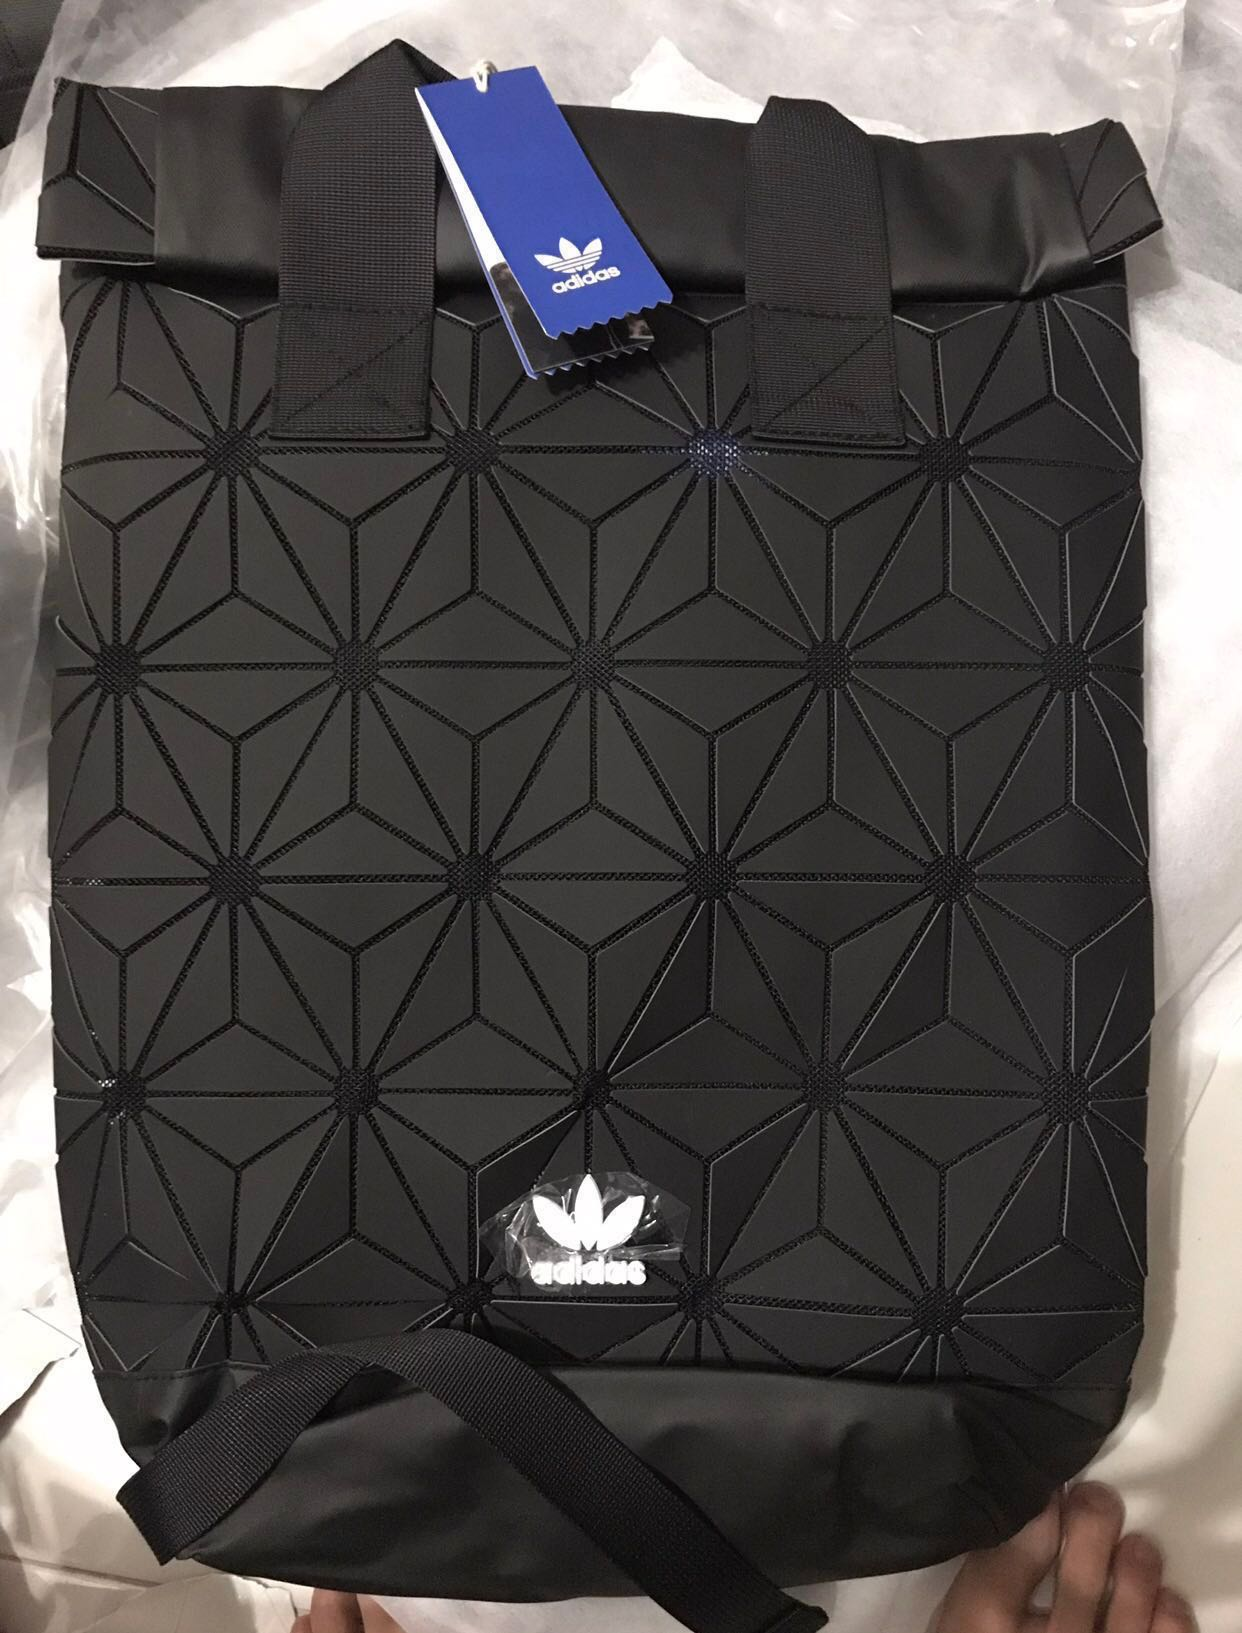 quality design b1d0e 5e8b7 Adidas 3D Roll Top Bag, Luxury, Bags   Wallets, Backpacks on Carousell